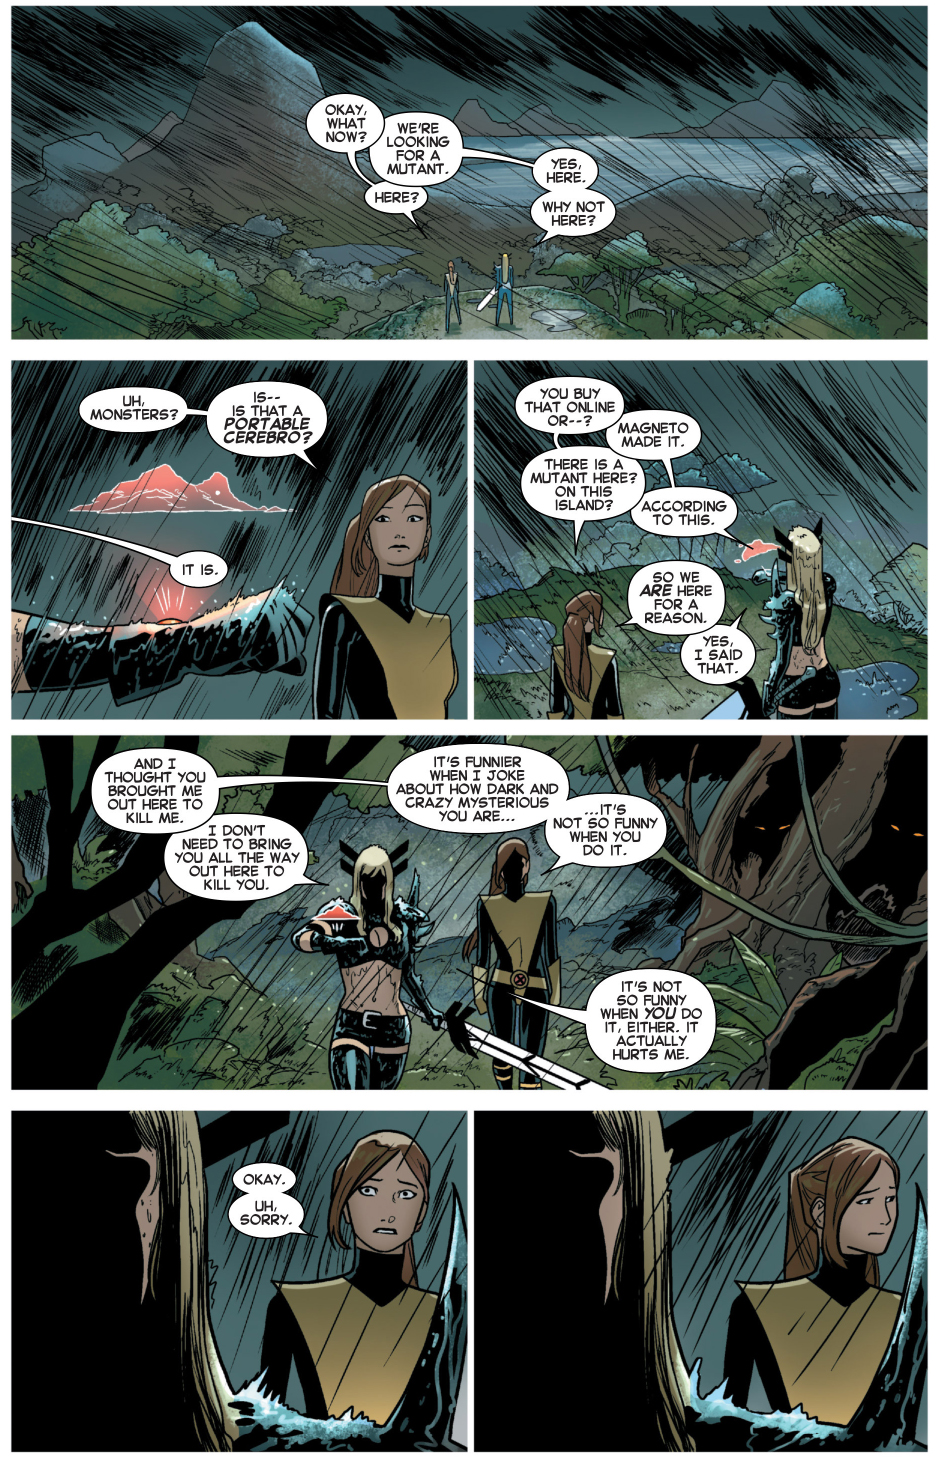 what not to say about magik